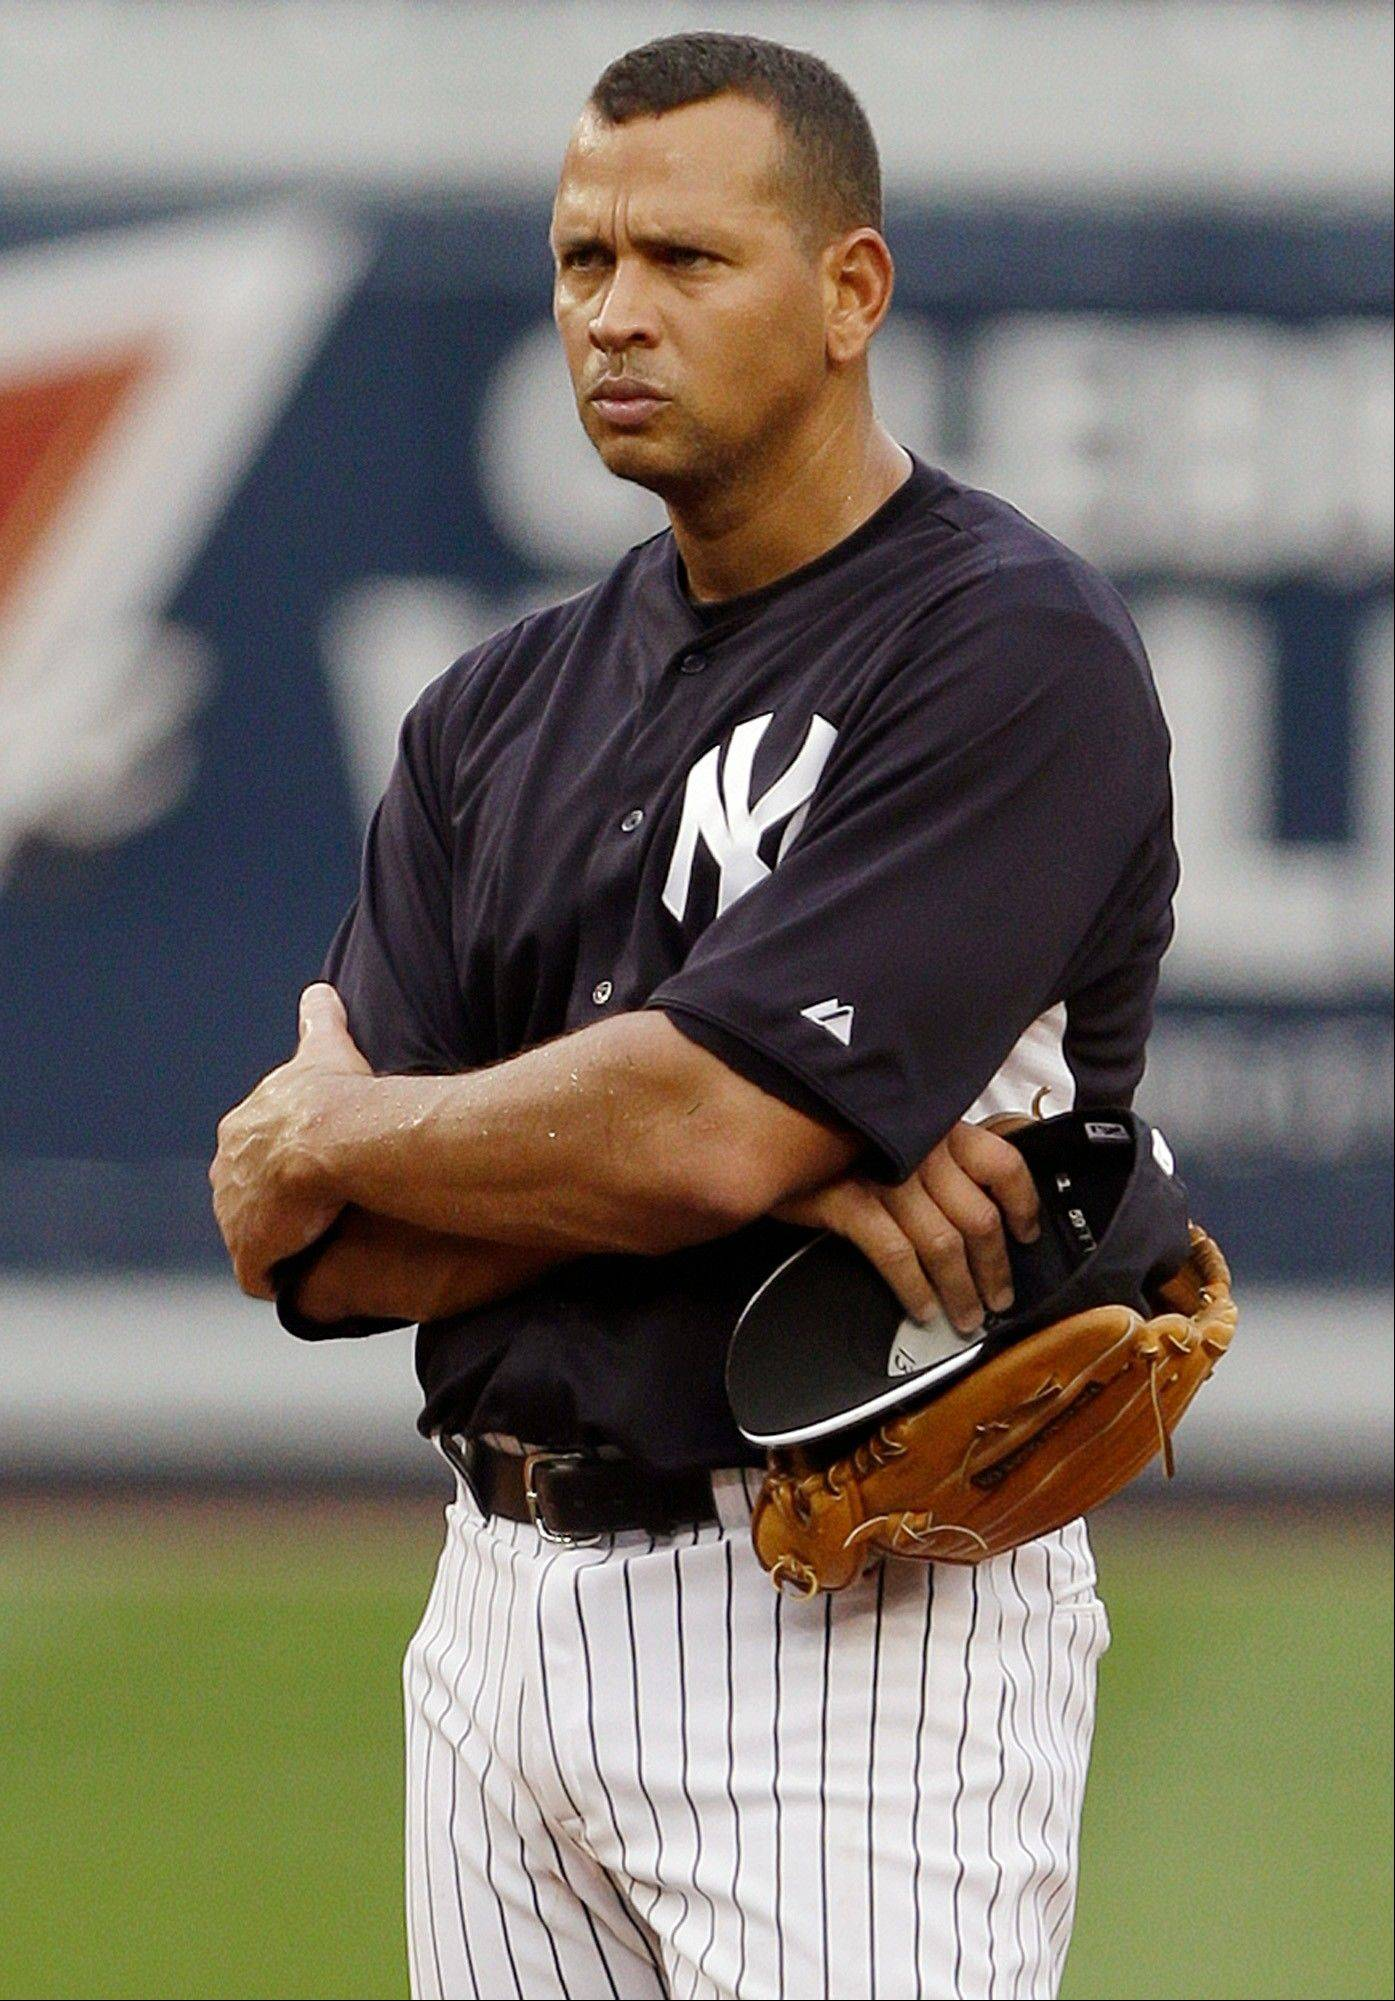 The Yankees' Alex Rodriguez is accused of violating baseball's drug agreement and labor contract.